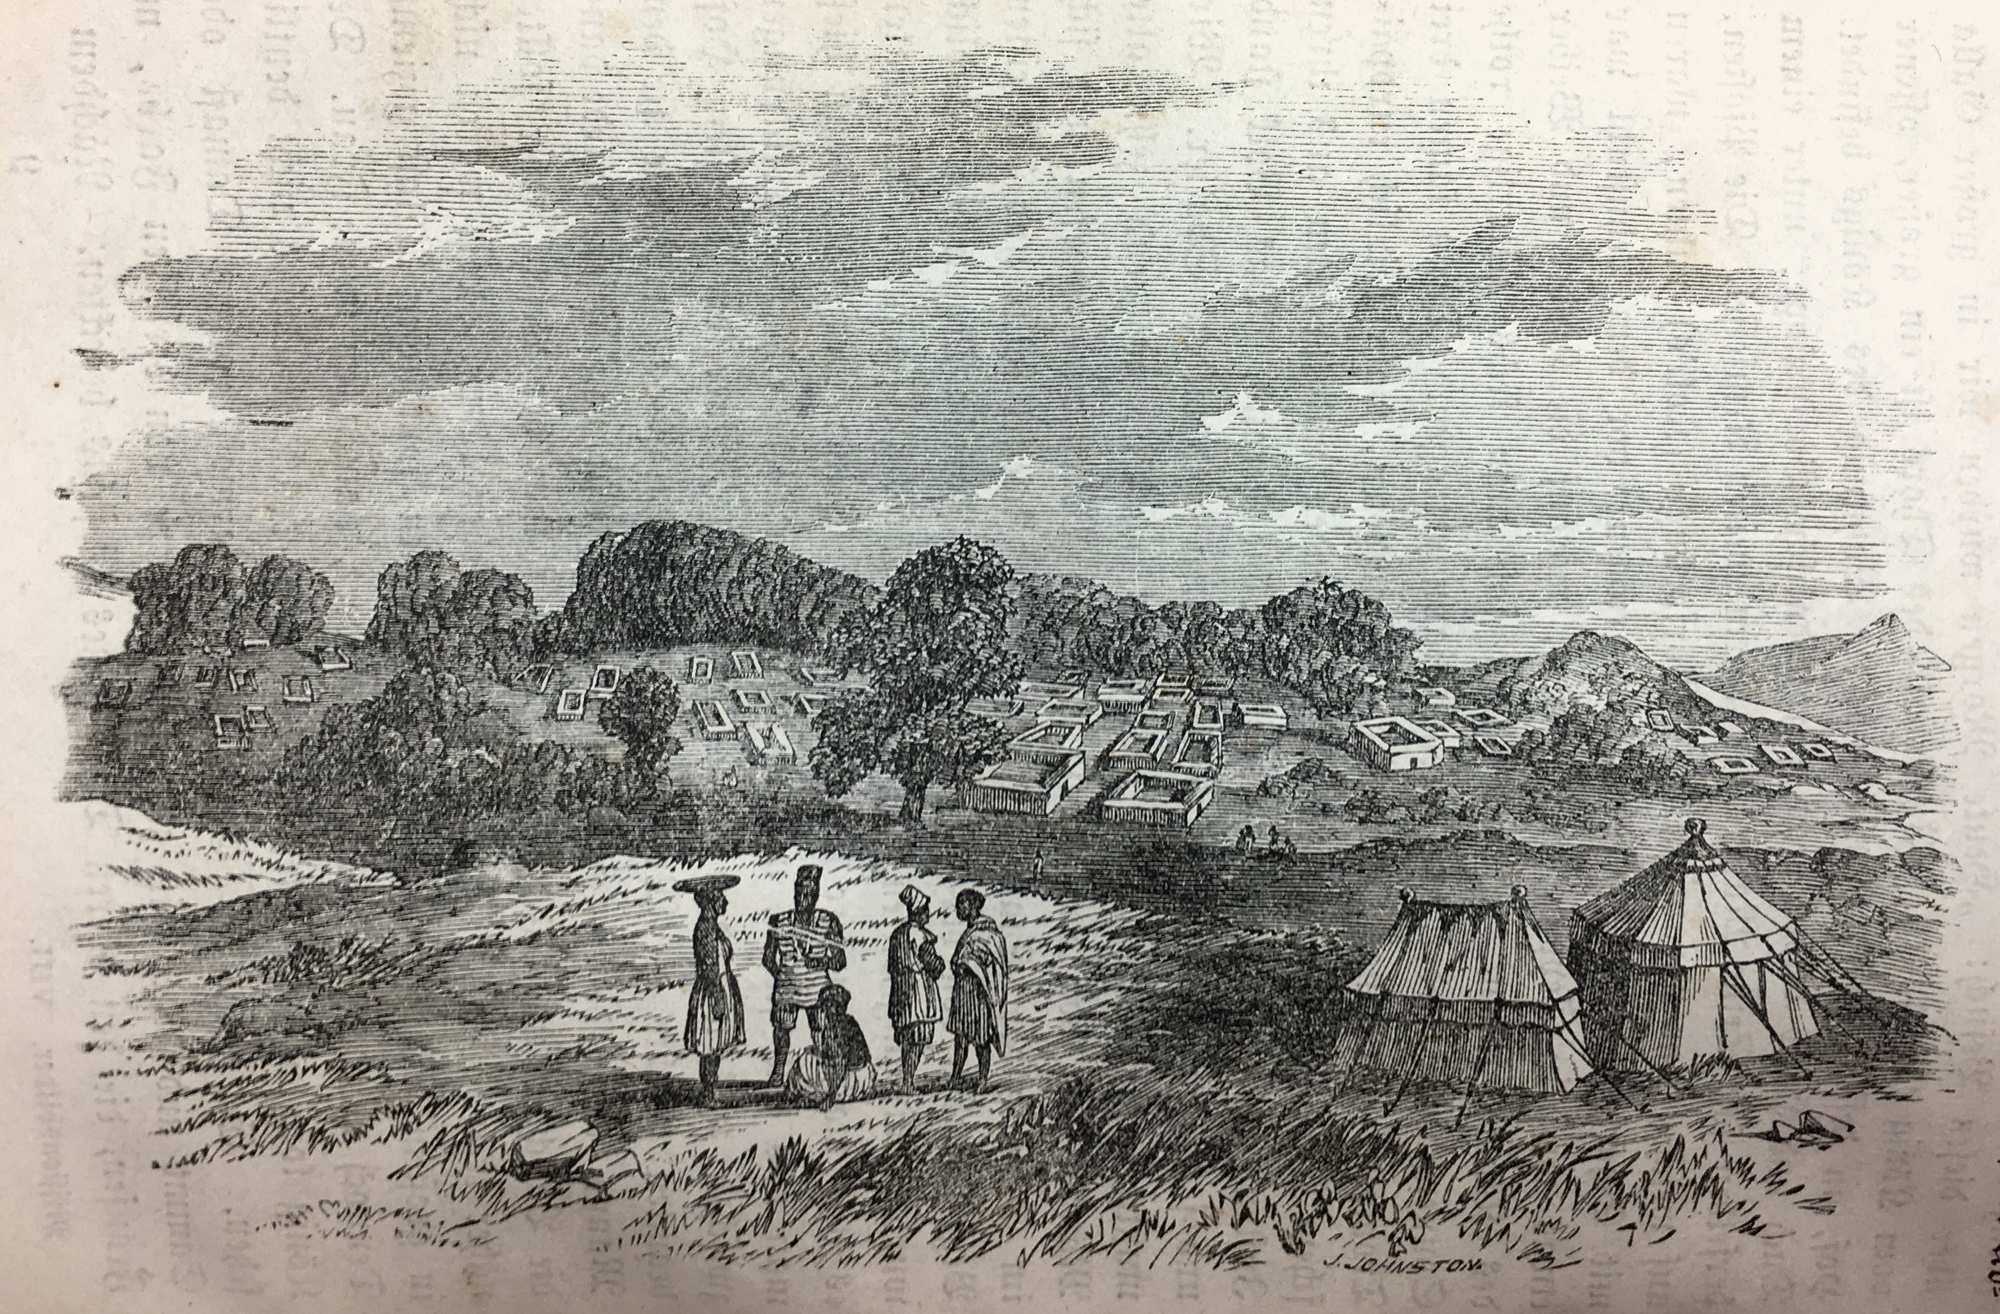 This is the city of IléIfẹ̀in the background, the author commented very critically on this illustration.